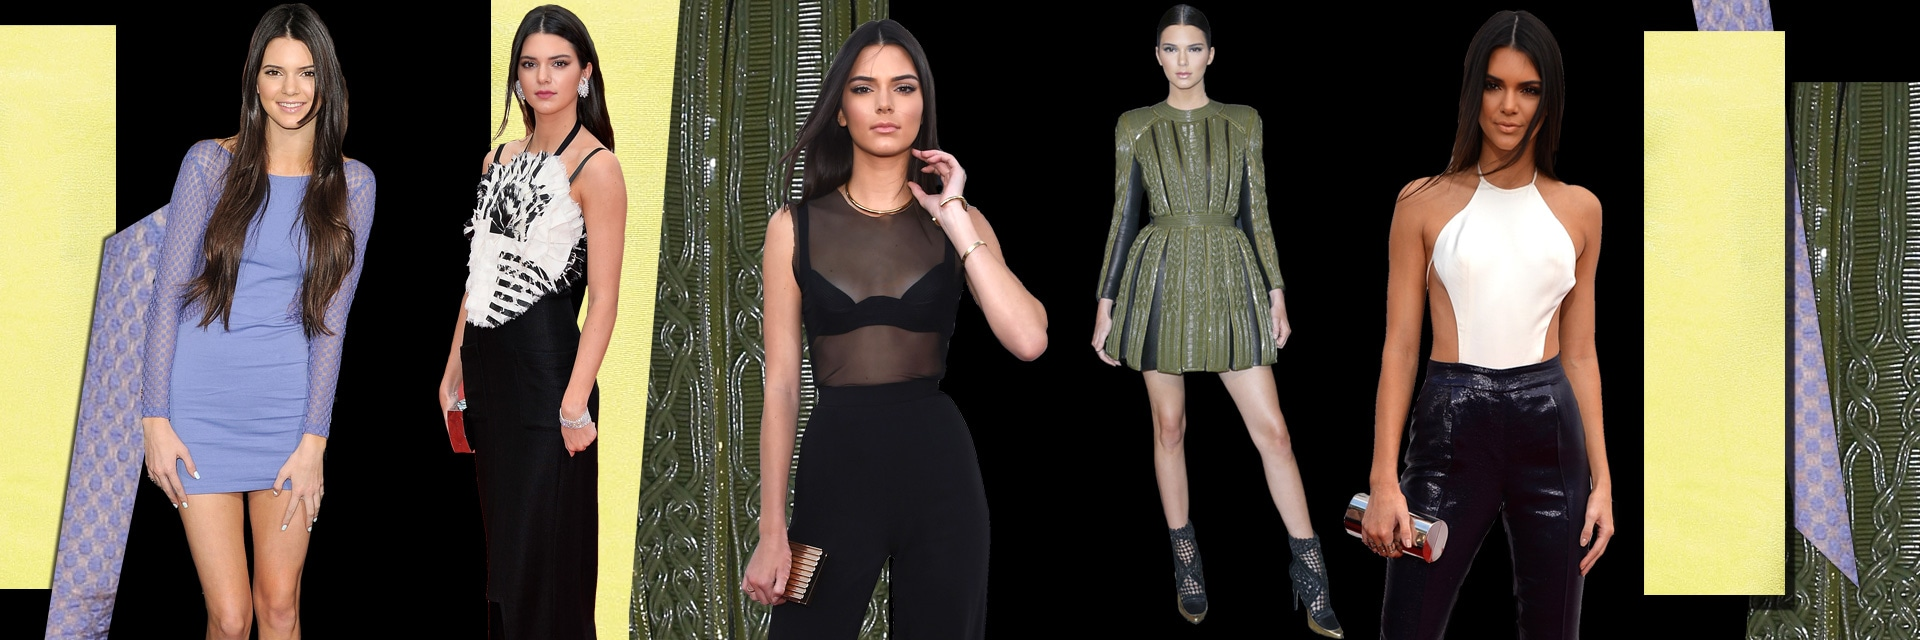 Kendall Jenner: fashion icon in passerella